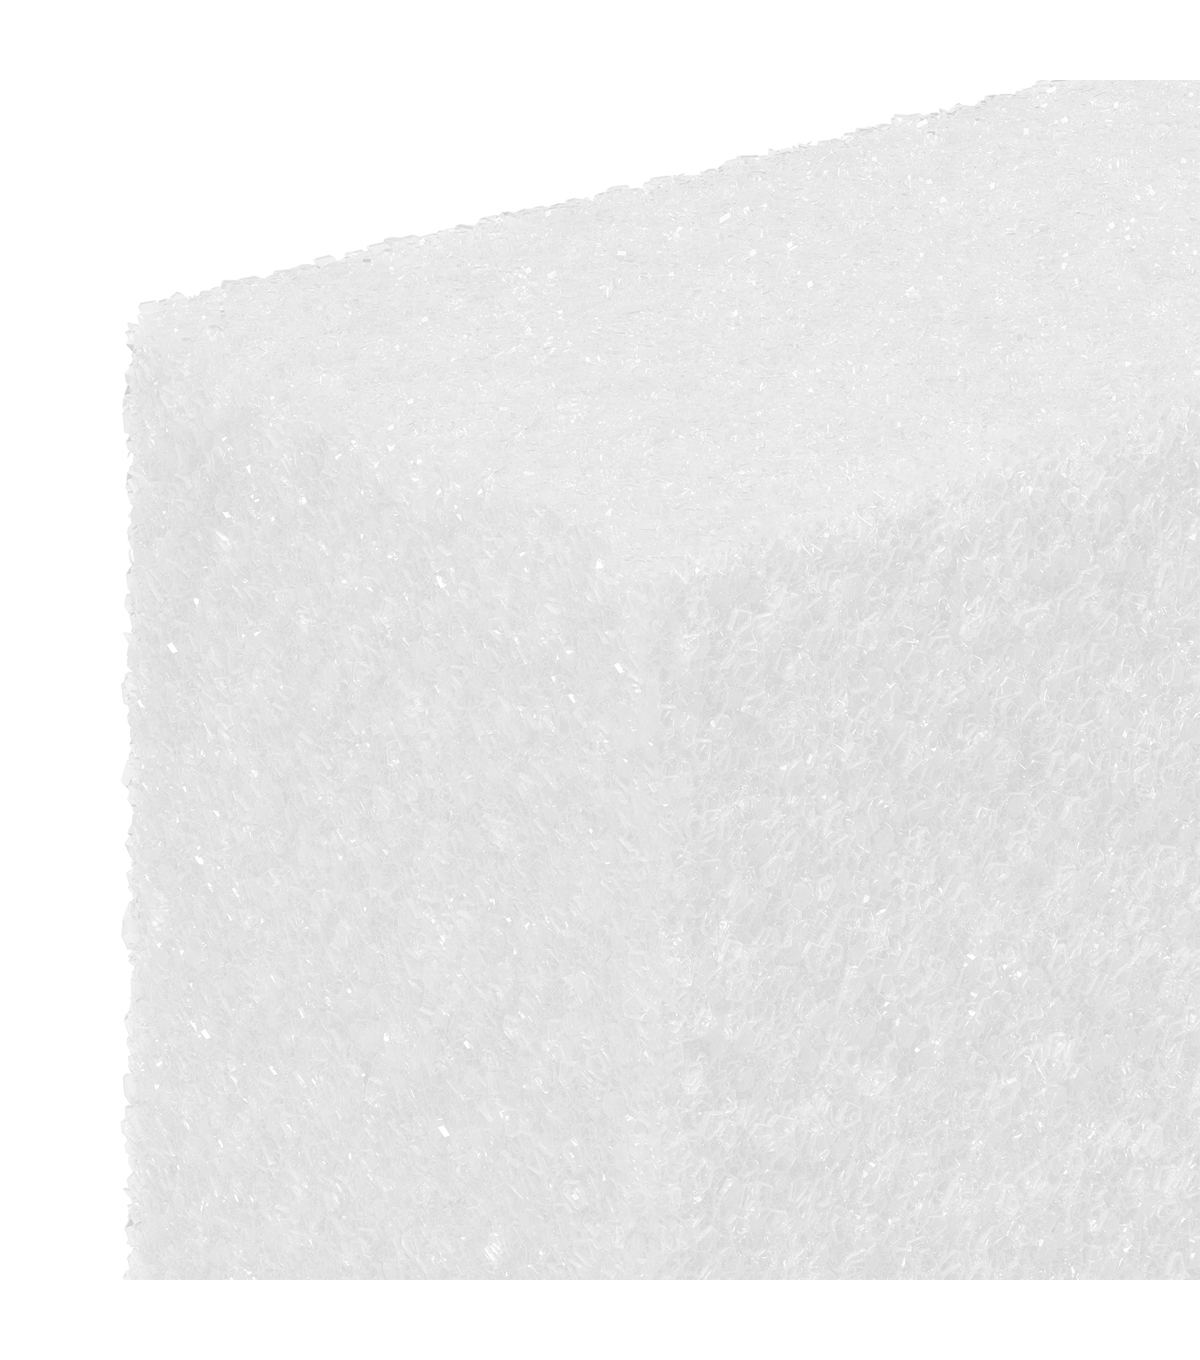 FloraCraft SmoothFoam 12\u0027\u0027 Styrofoam Cake Form-White